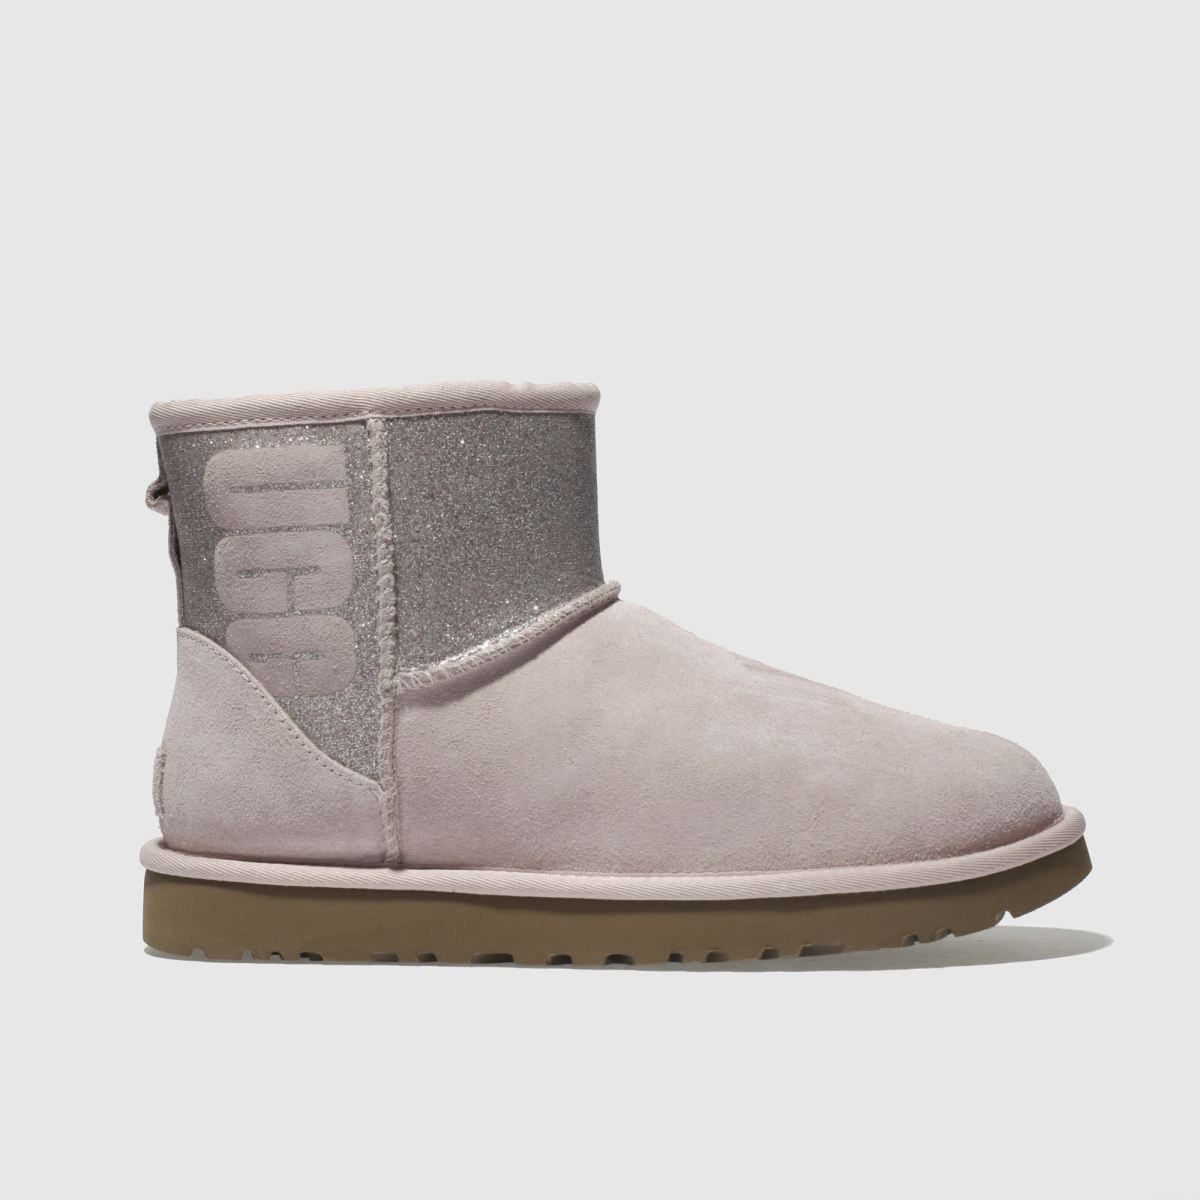 Ugg Pale Pink Classic Mini Sparkle Boots